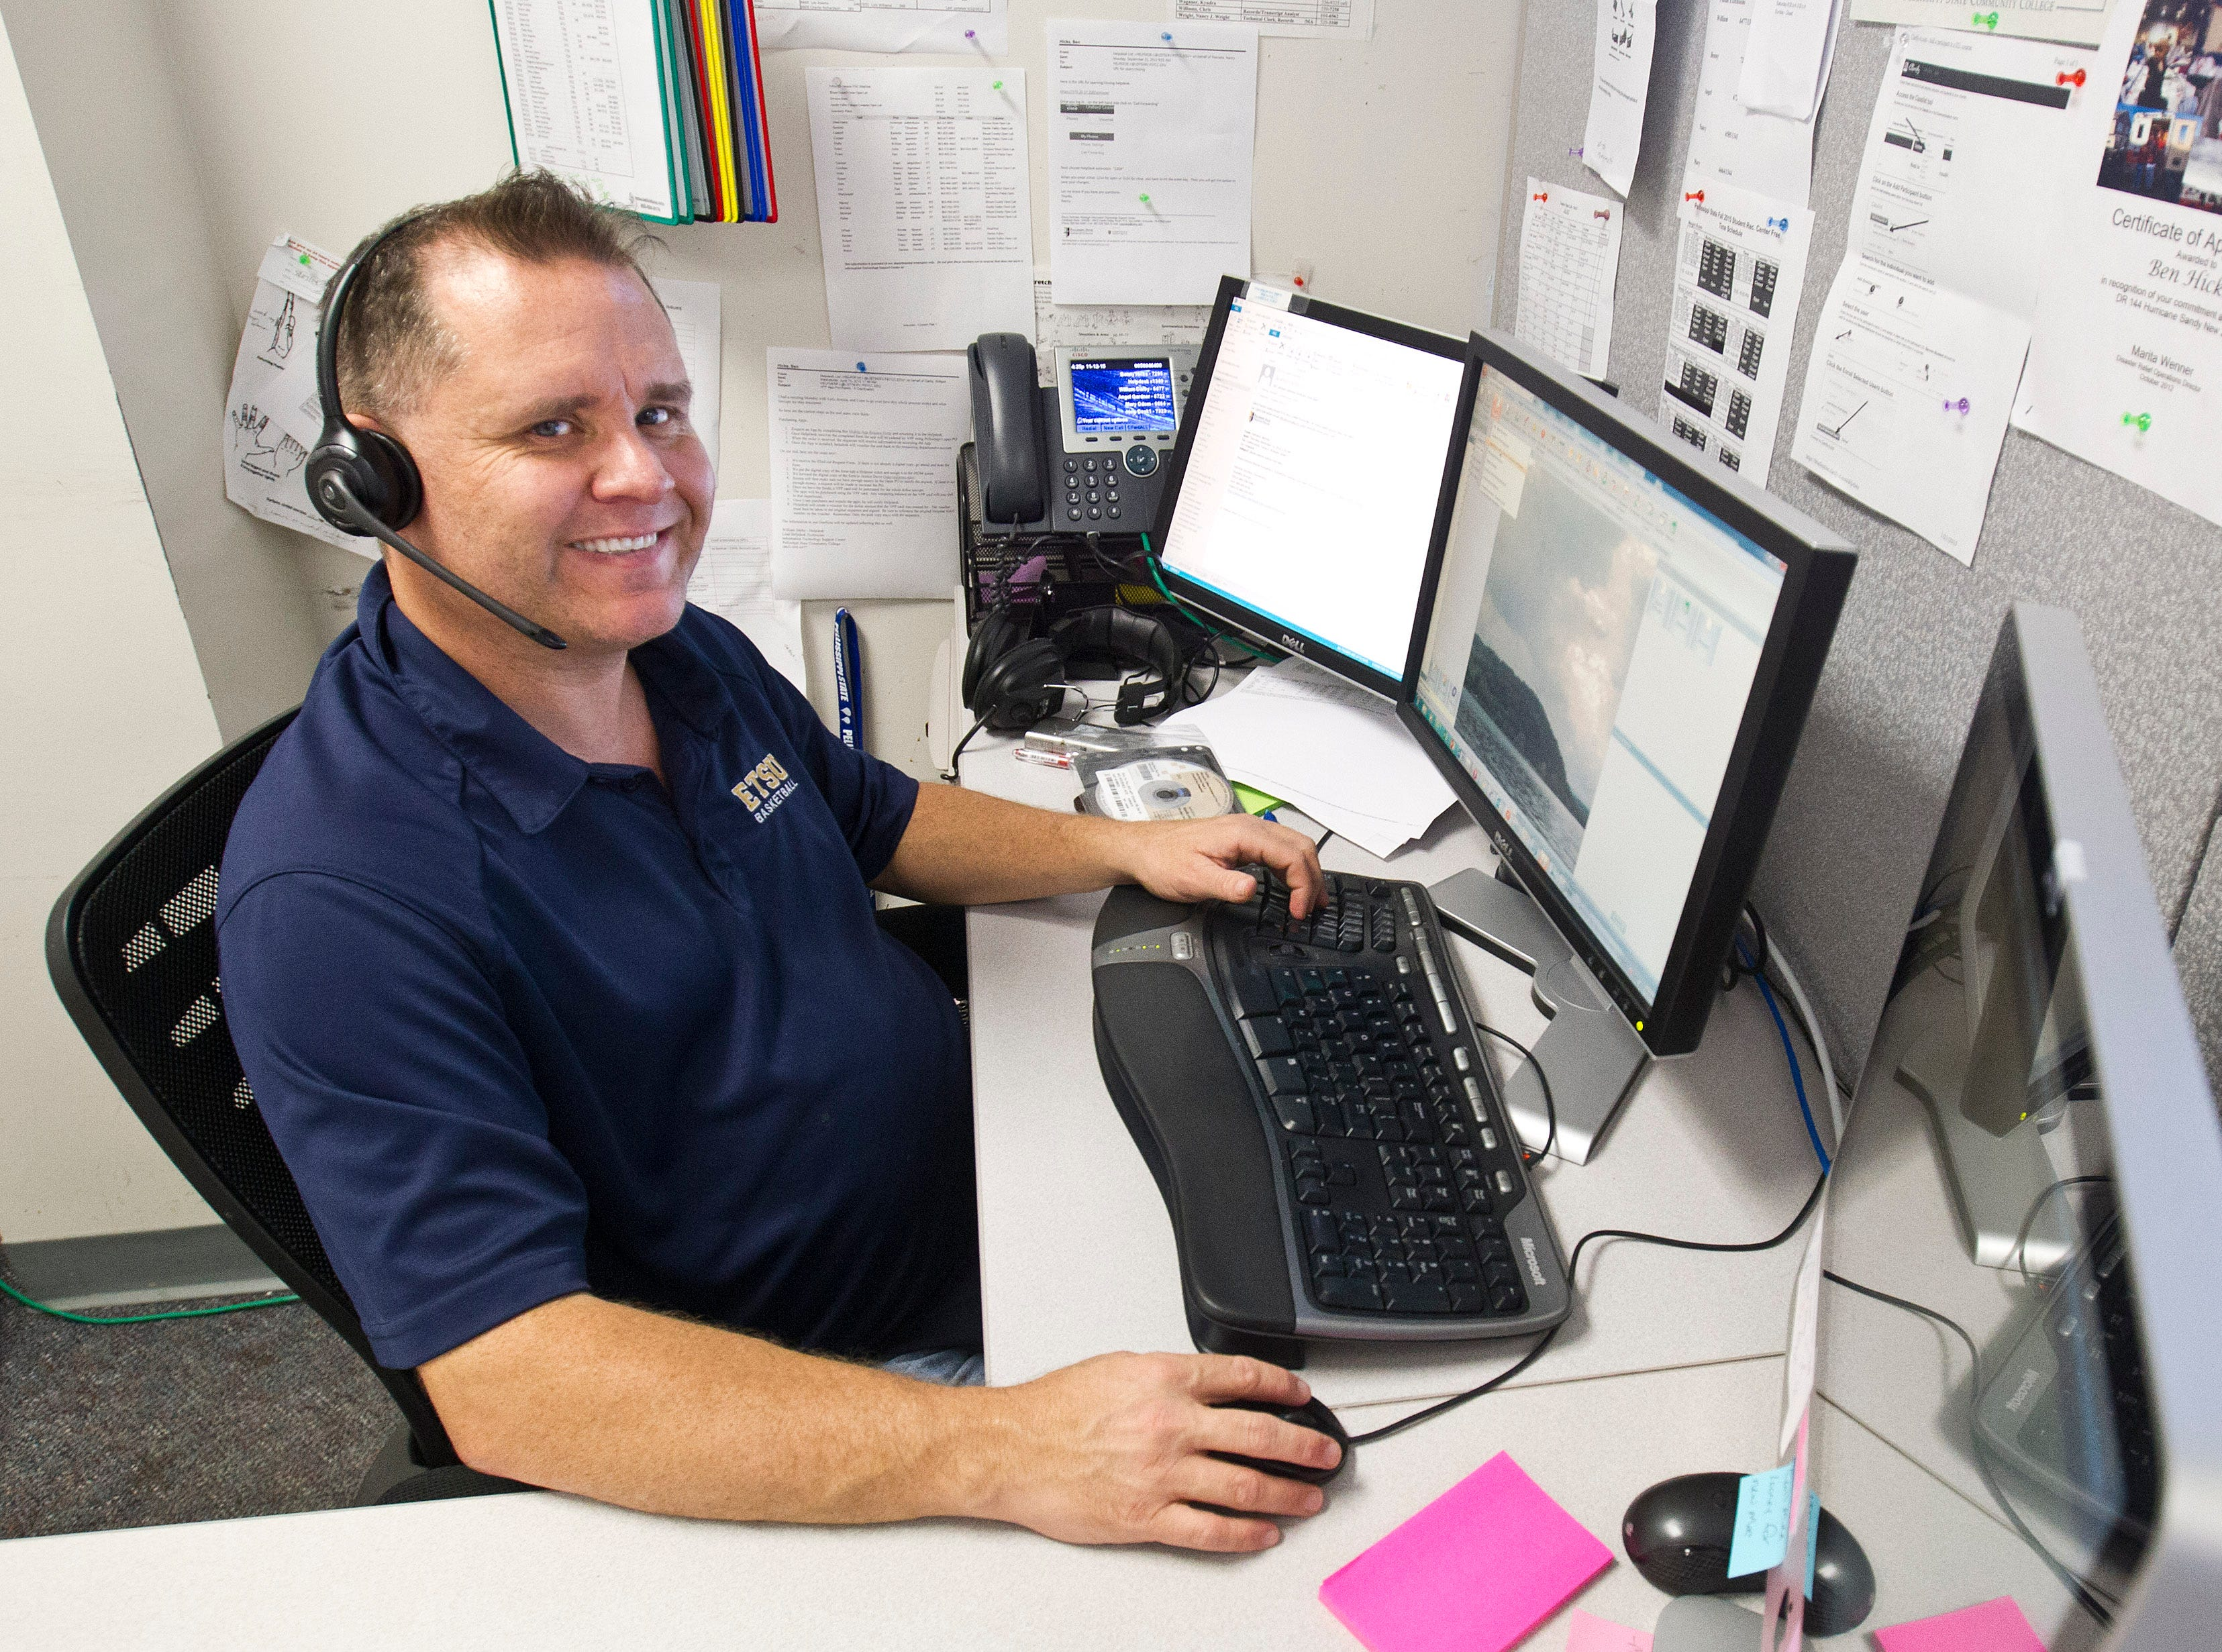 Benny Hicks works in the online support department at Pellissippi State Community College.